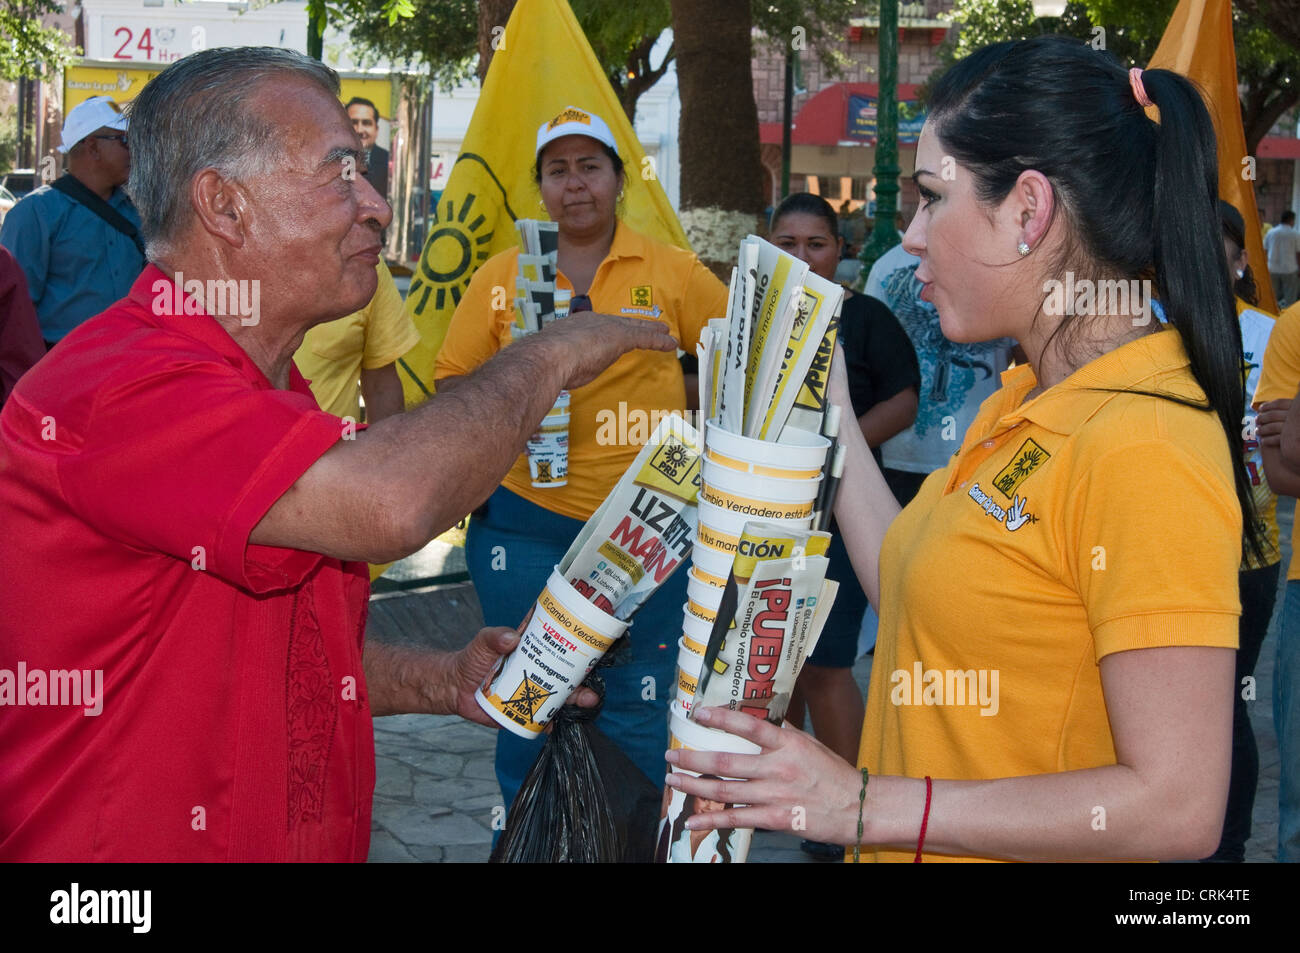 Lizbeth Marin Sanchez, Party of Democratic Revolution candidate for Congress 2012 elections, campaigning in Nuevo - Stock Image